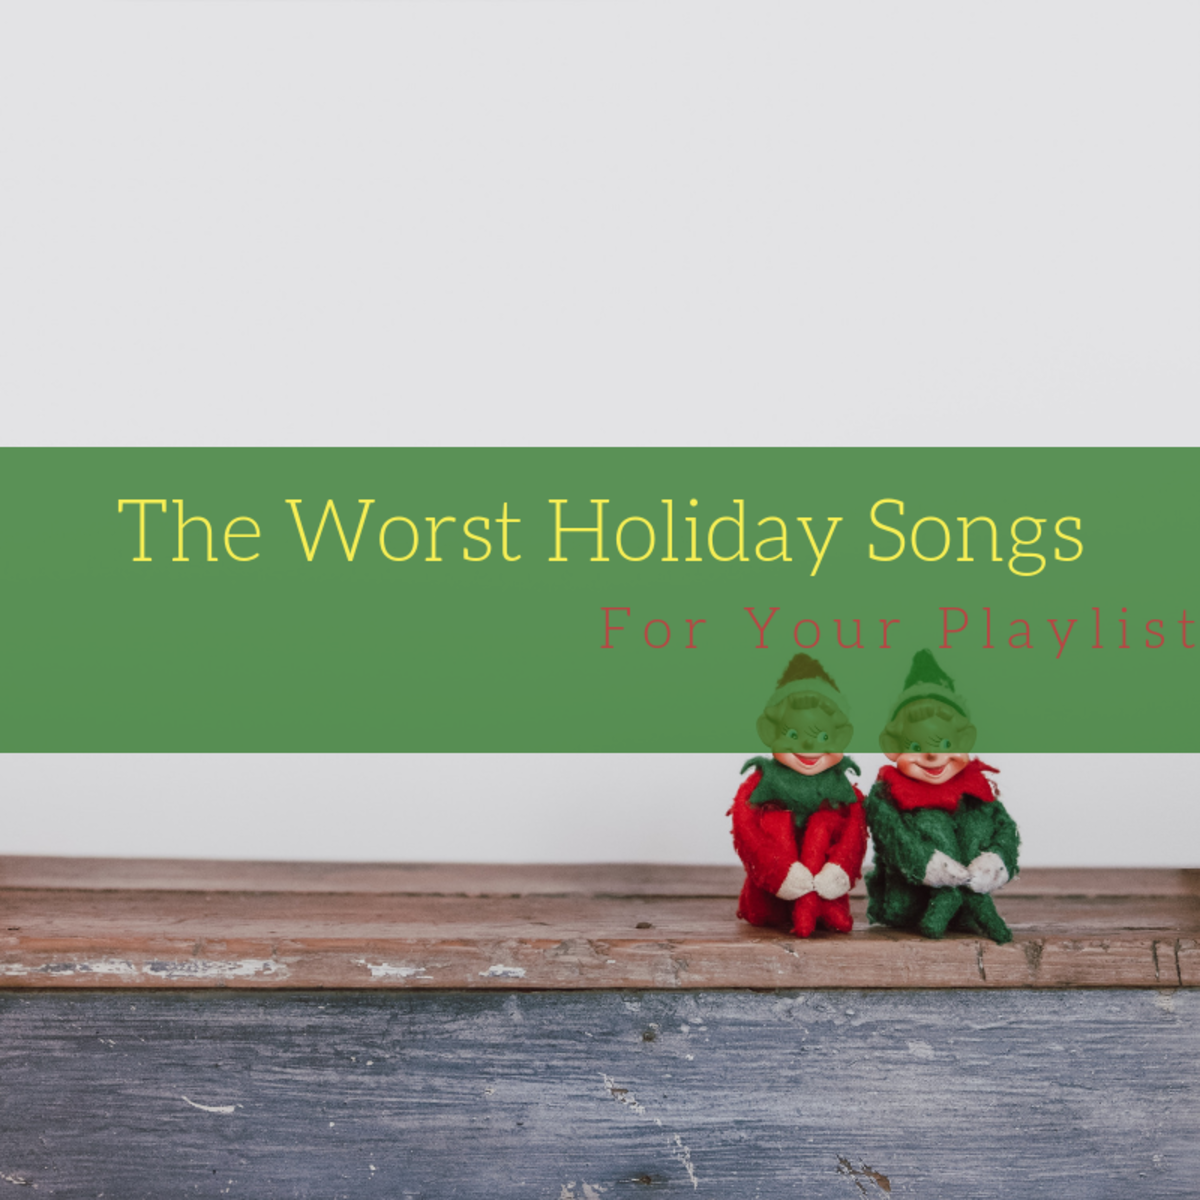 The 12 Worst Christmas Songs: An Annoying Holiday Playlist